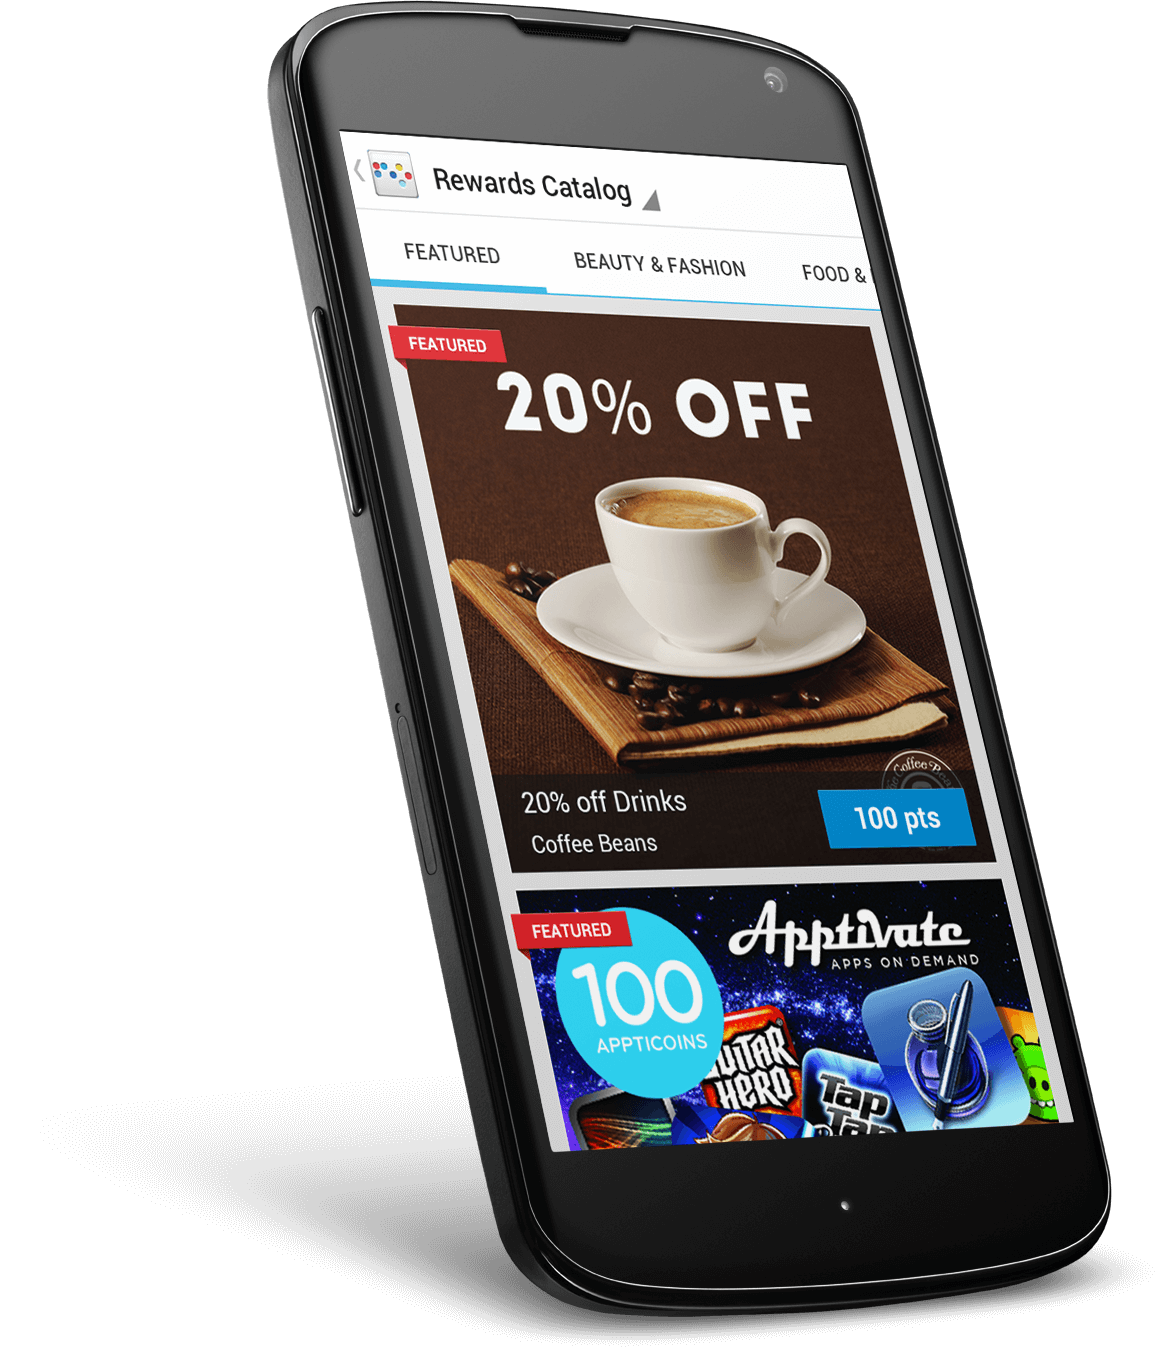 Loyalty product design on Android screen